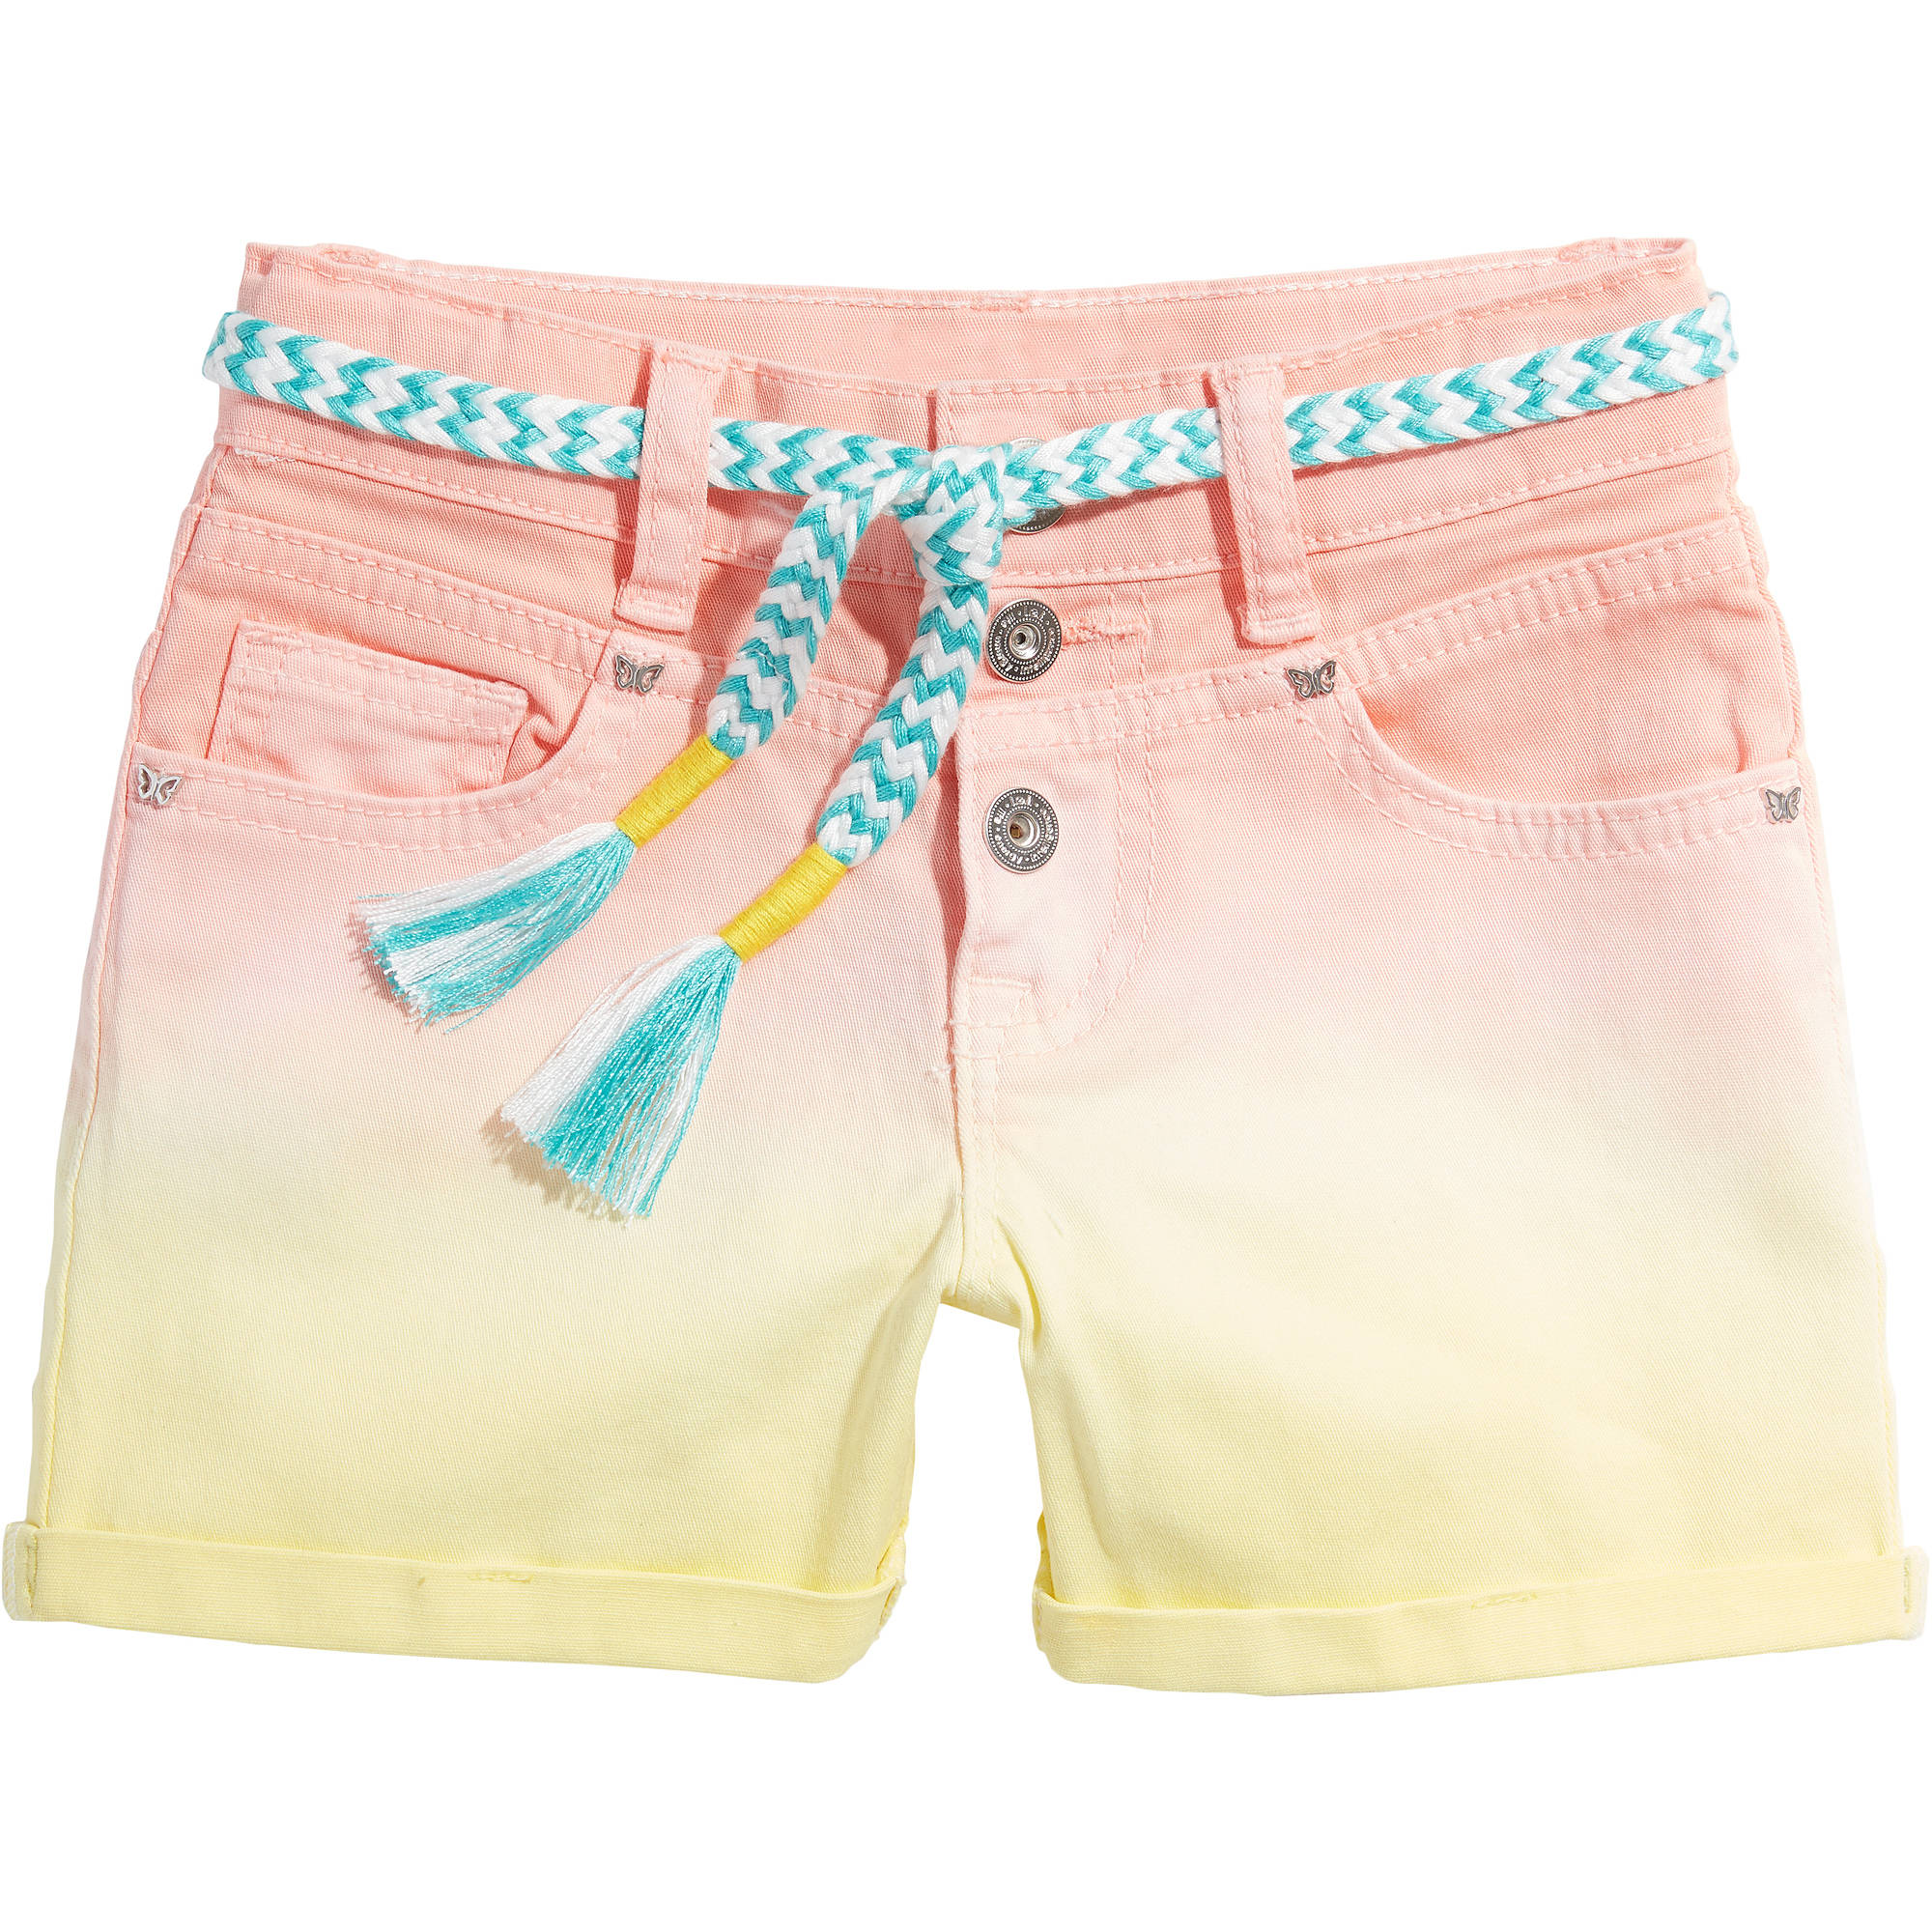 LEI Girls' High Rise Rainbow Denim Shorts